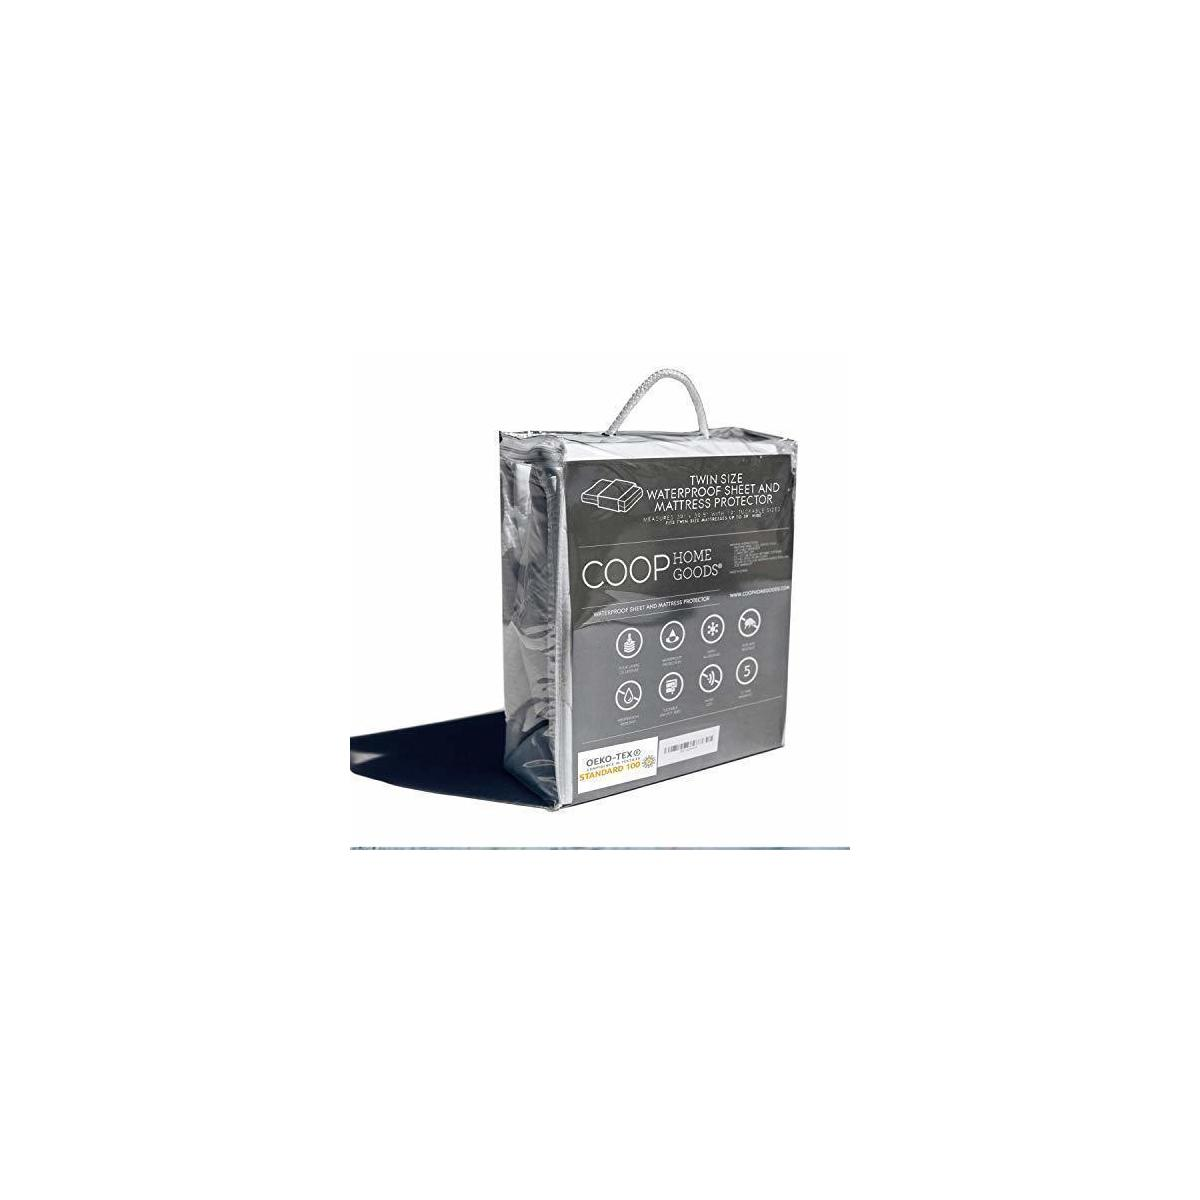 Incredible Incontinence Pad - Twin